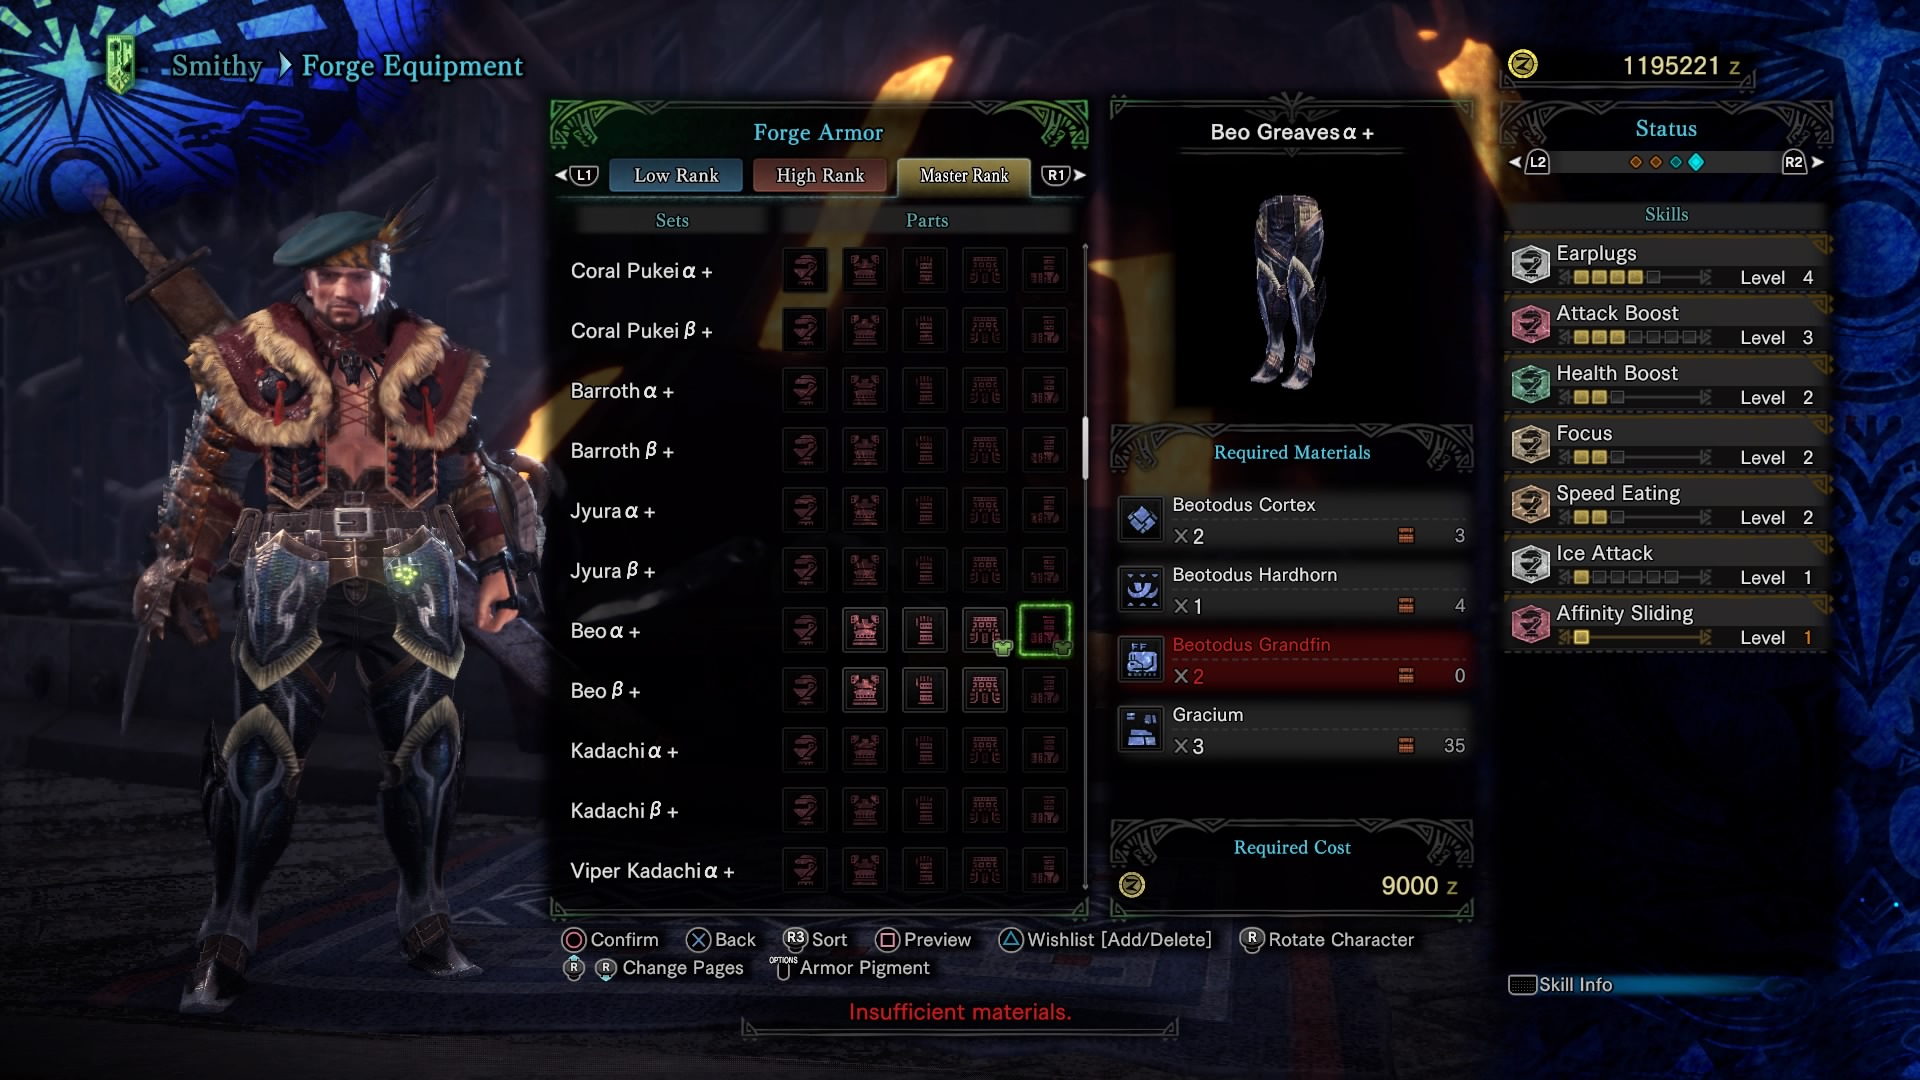 Mhw Iceborne Recommended Armor For Early Master Rank Gamewith If gunning/bow, i think youre going to get oneshot regardless by the beams and ultimate. mhw iceborne recommended armor for